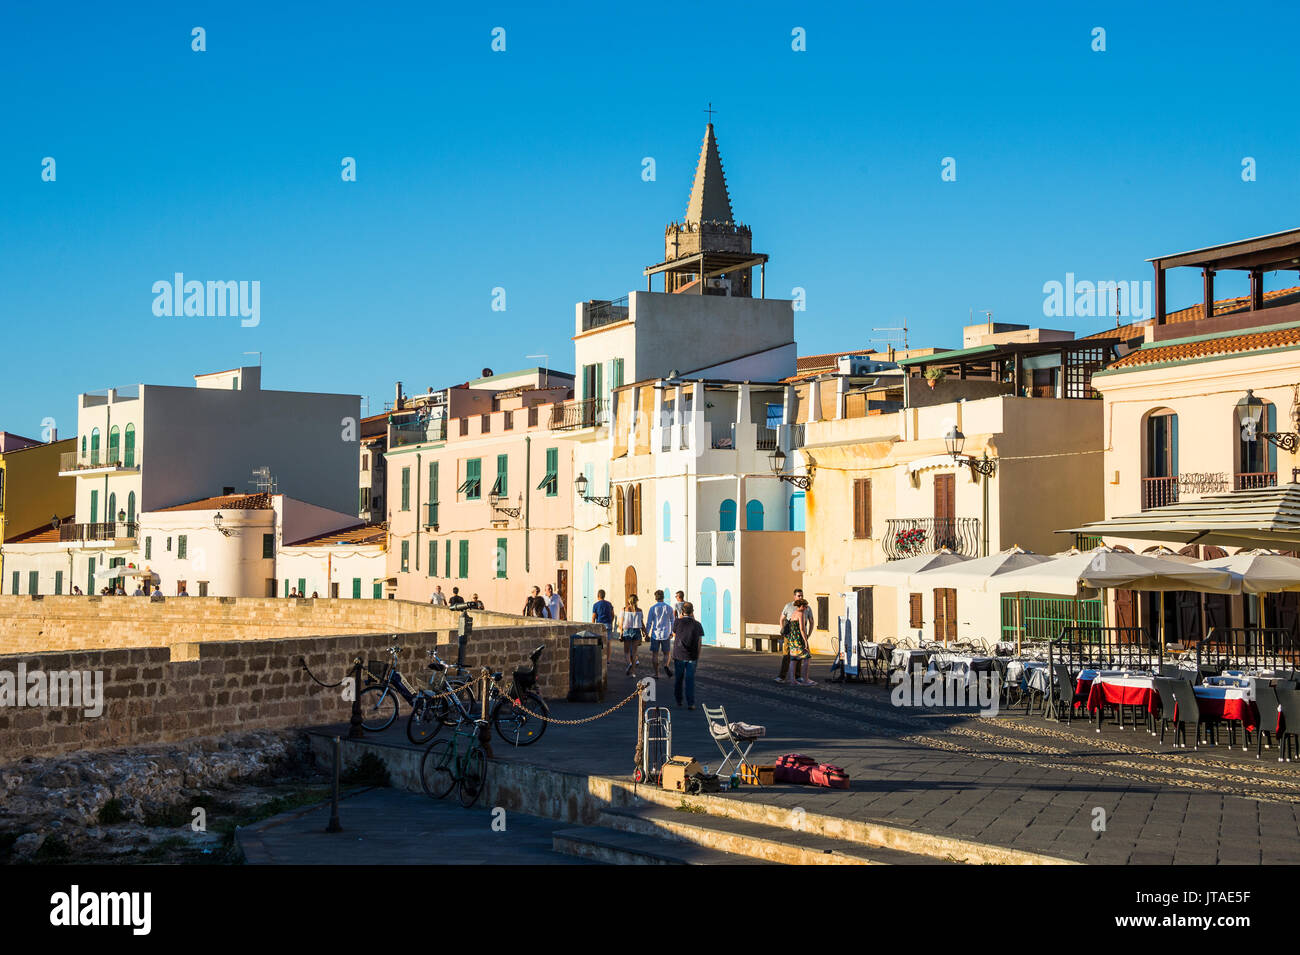 Ocean promenade in the coastal town of Alghero, Sardinia, Italy, Mediterranean, Europe - Stock Image